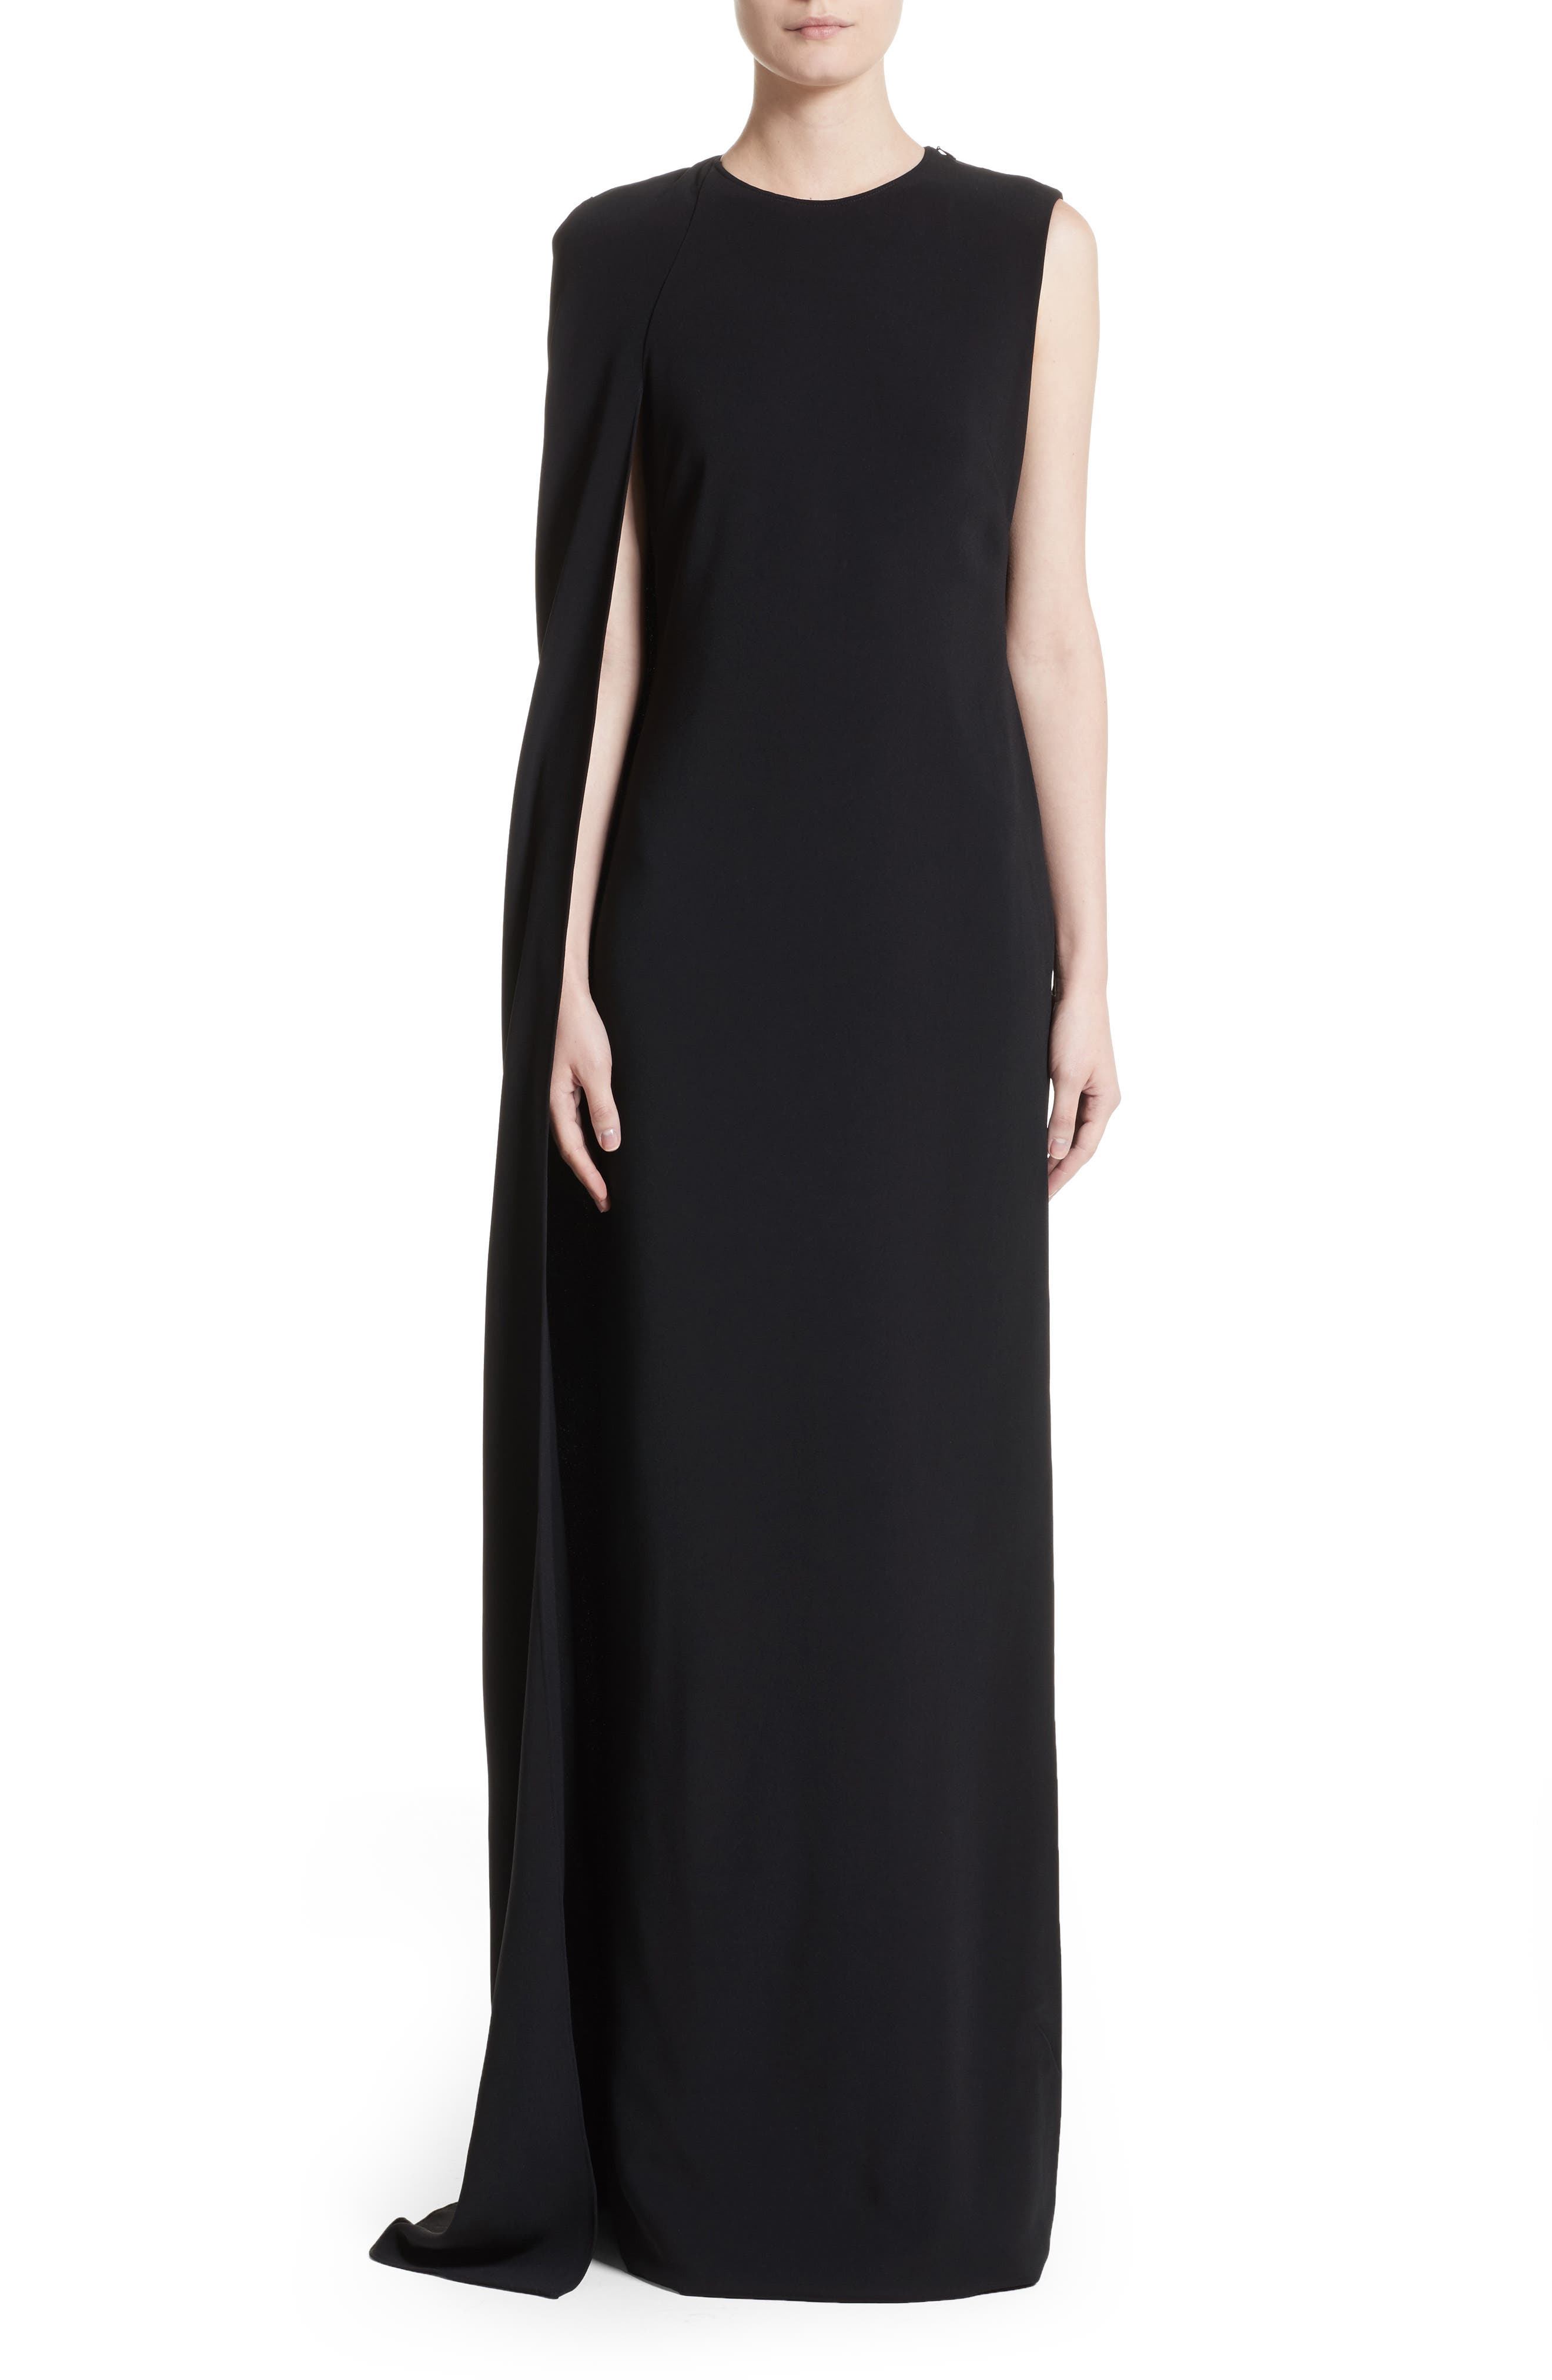 Stella McCartney Stretch Cady One-Shoulder Cape Gown